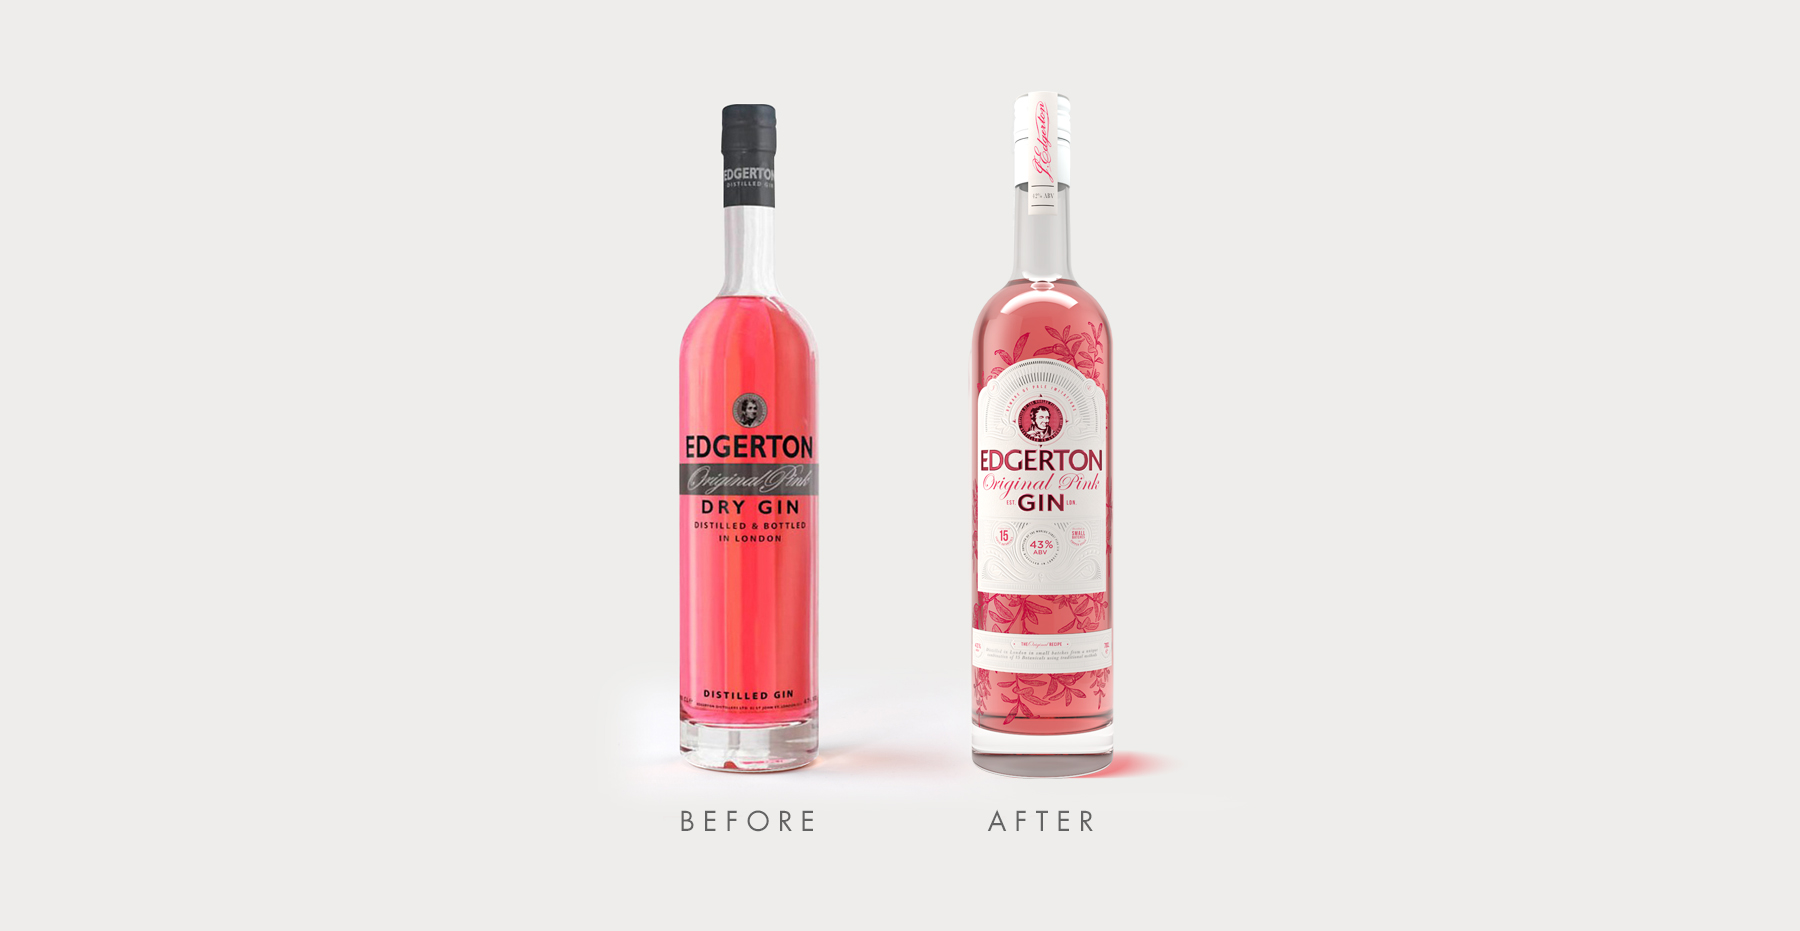 Brand identity and gin bottle label design for Edgerton Gin by Design Happy London - Before and after packaging design